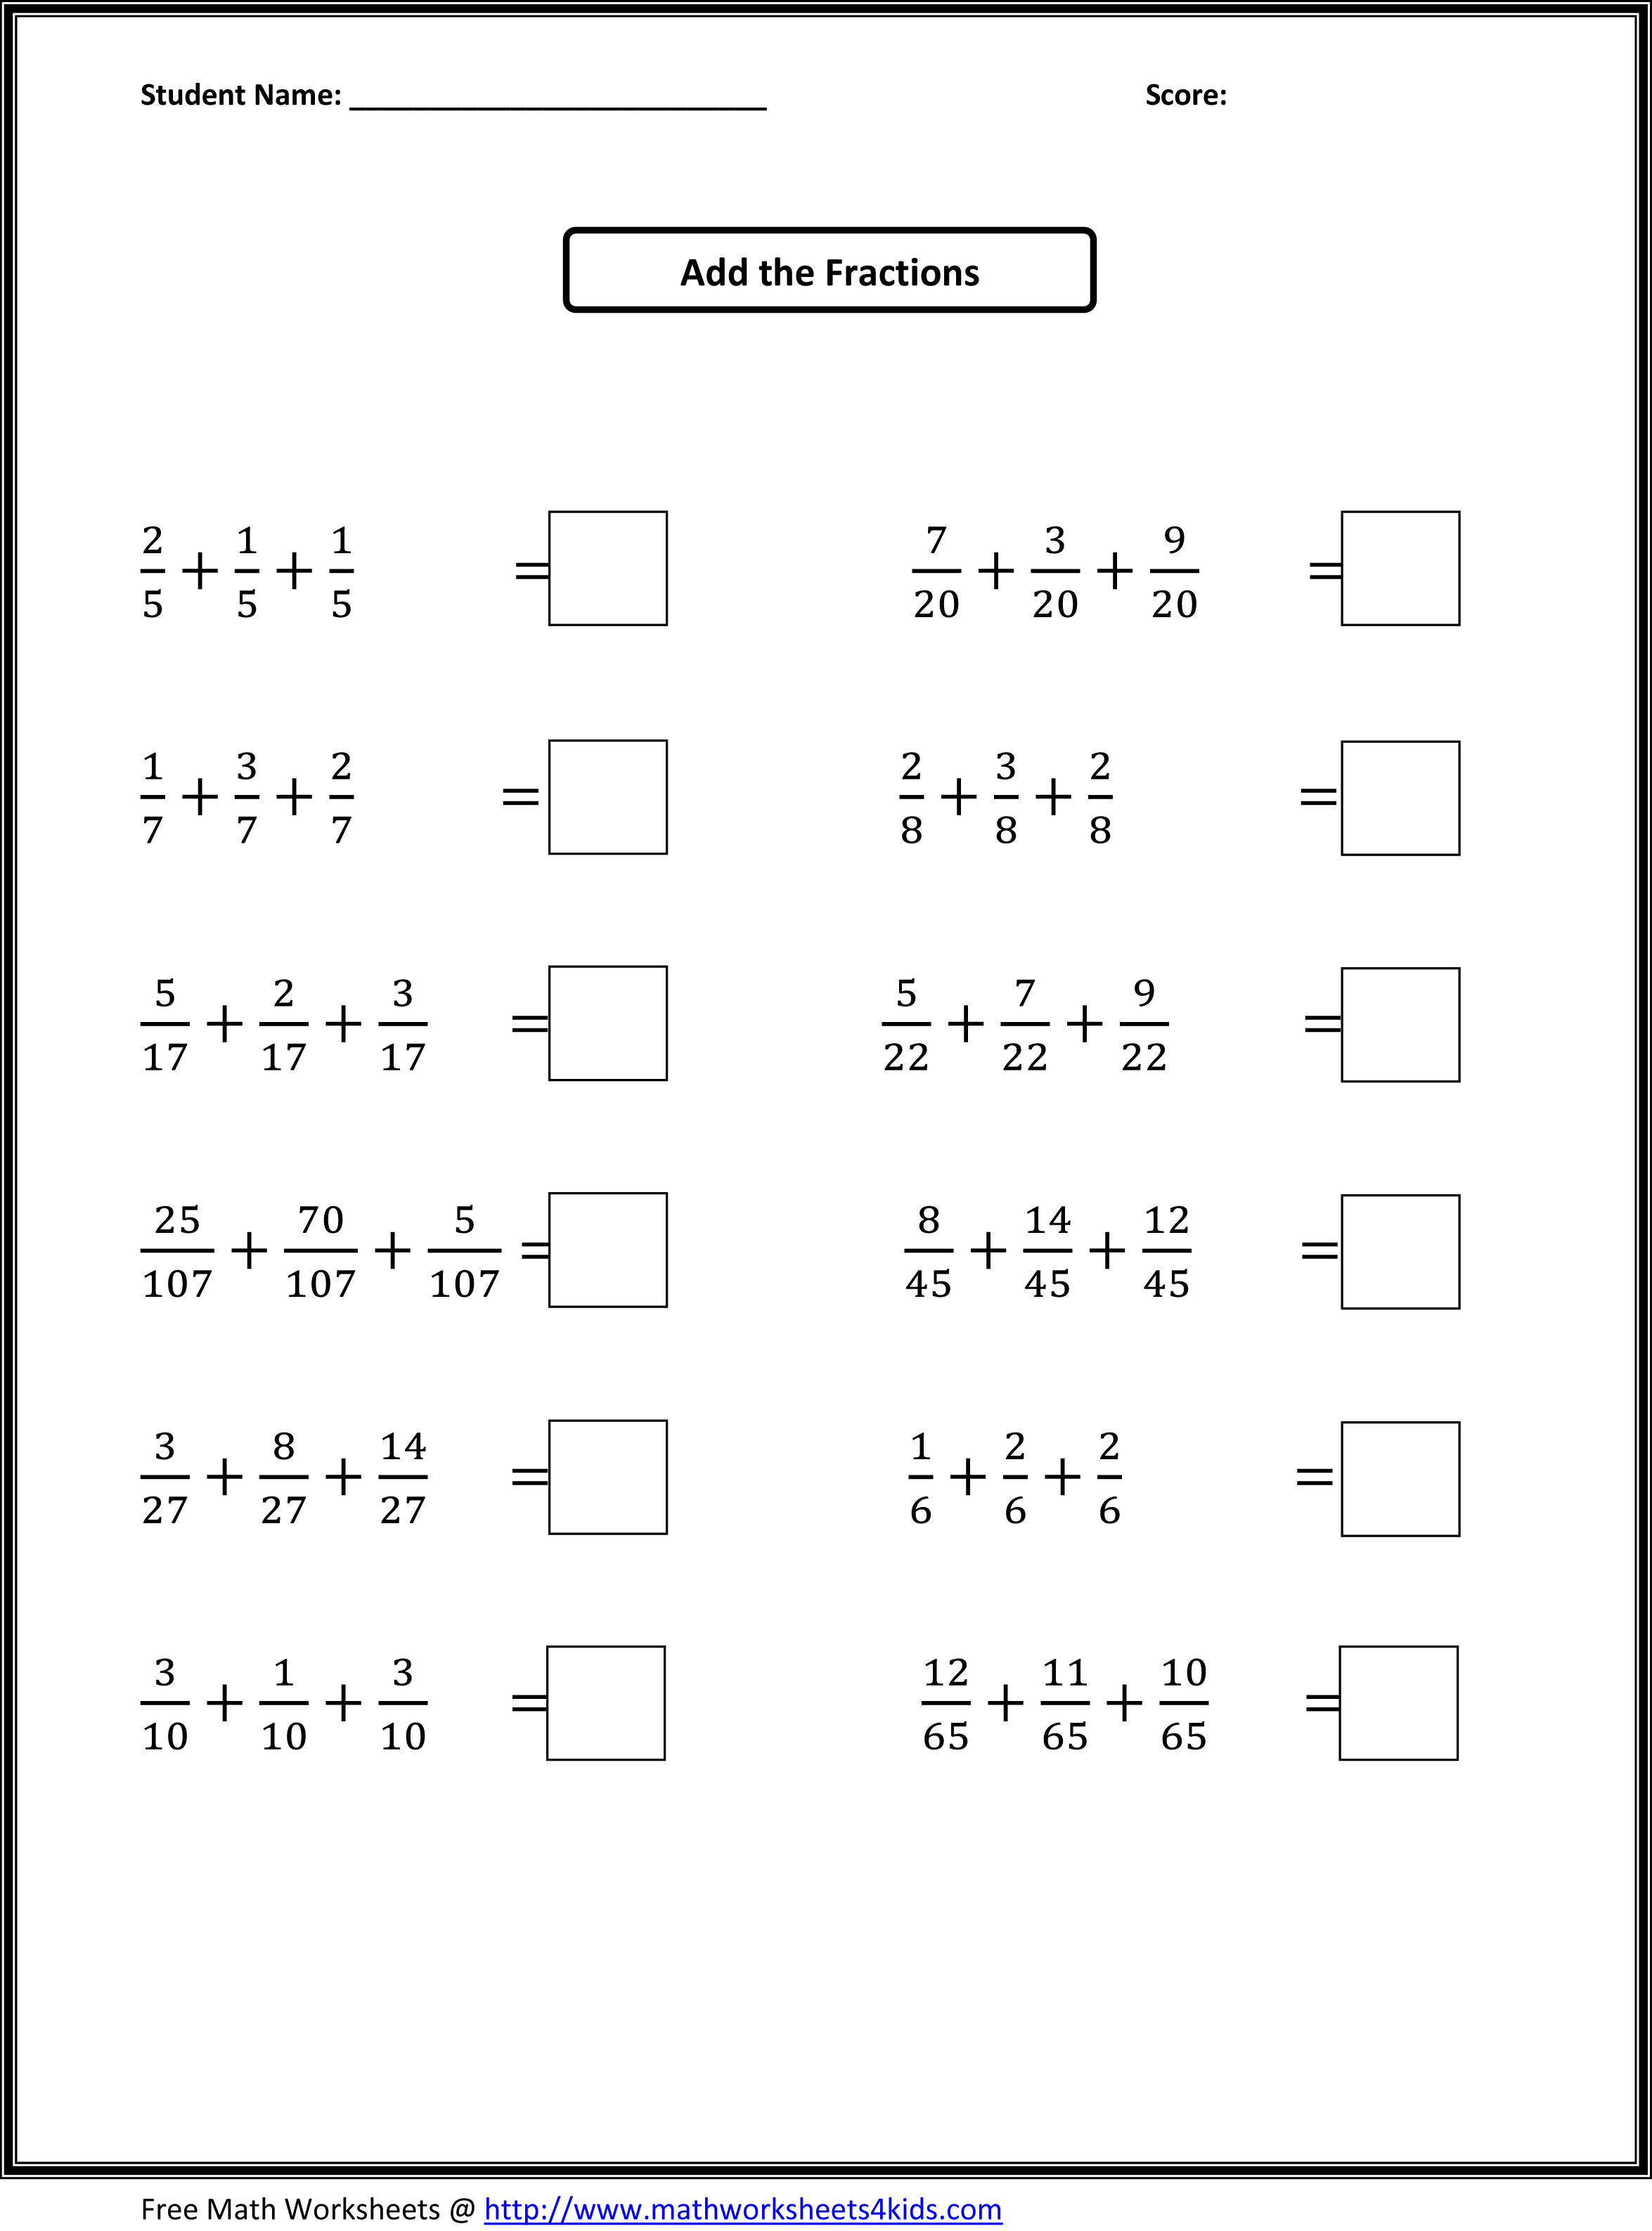 math worksheet : fraction worksheets grade 7  synhoff : Printable Fraction Worksheets